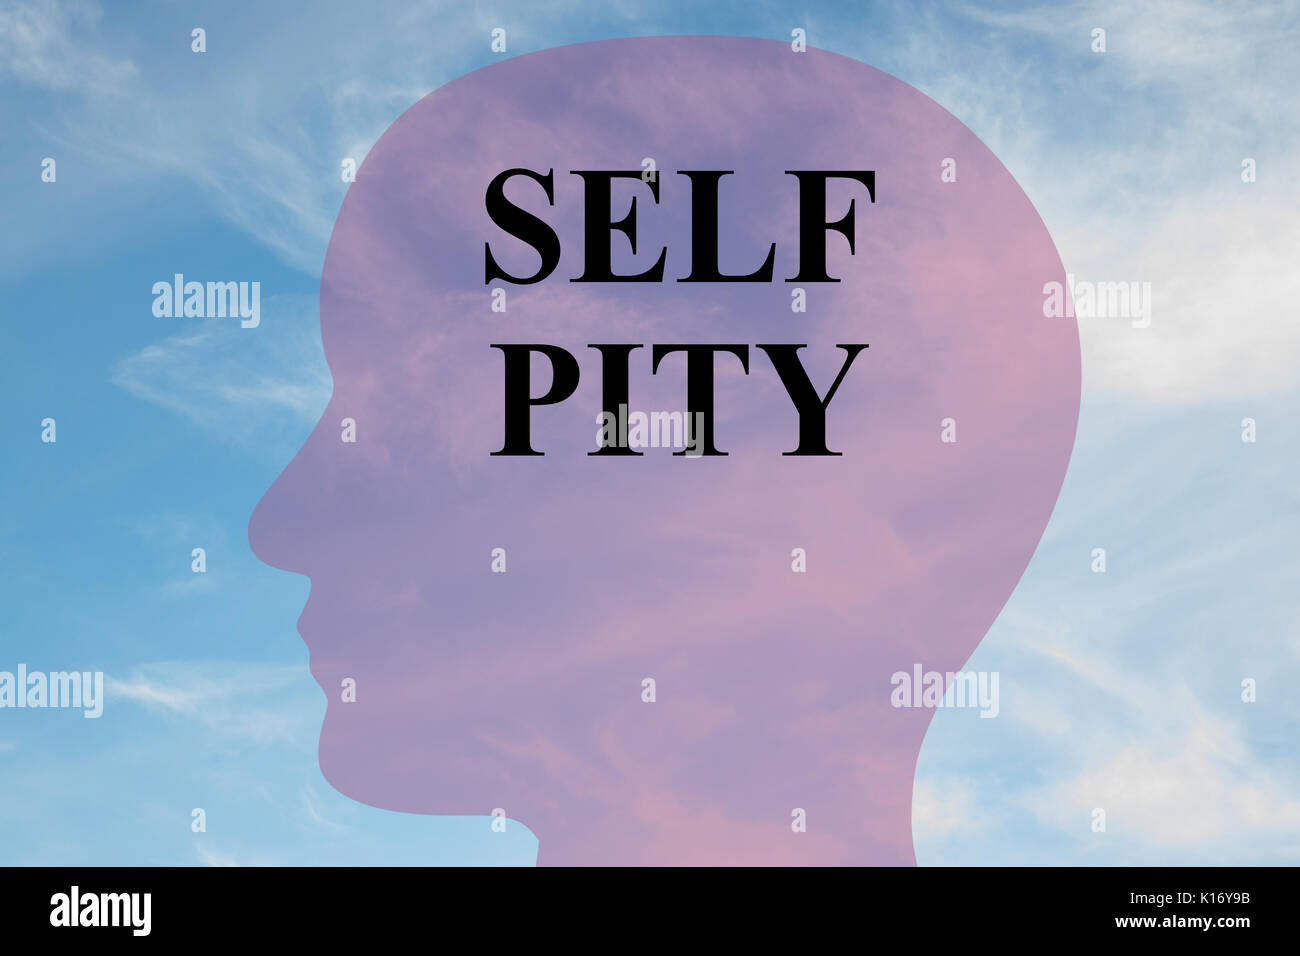 Render illustration of 'SELF PITY' title on head silhouette, with cloudy sky as a background. - Stock Image